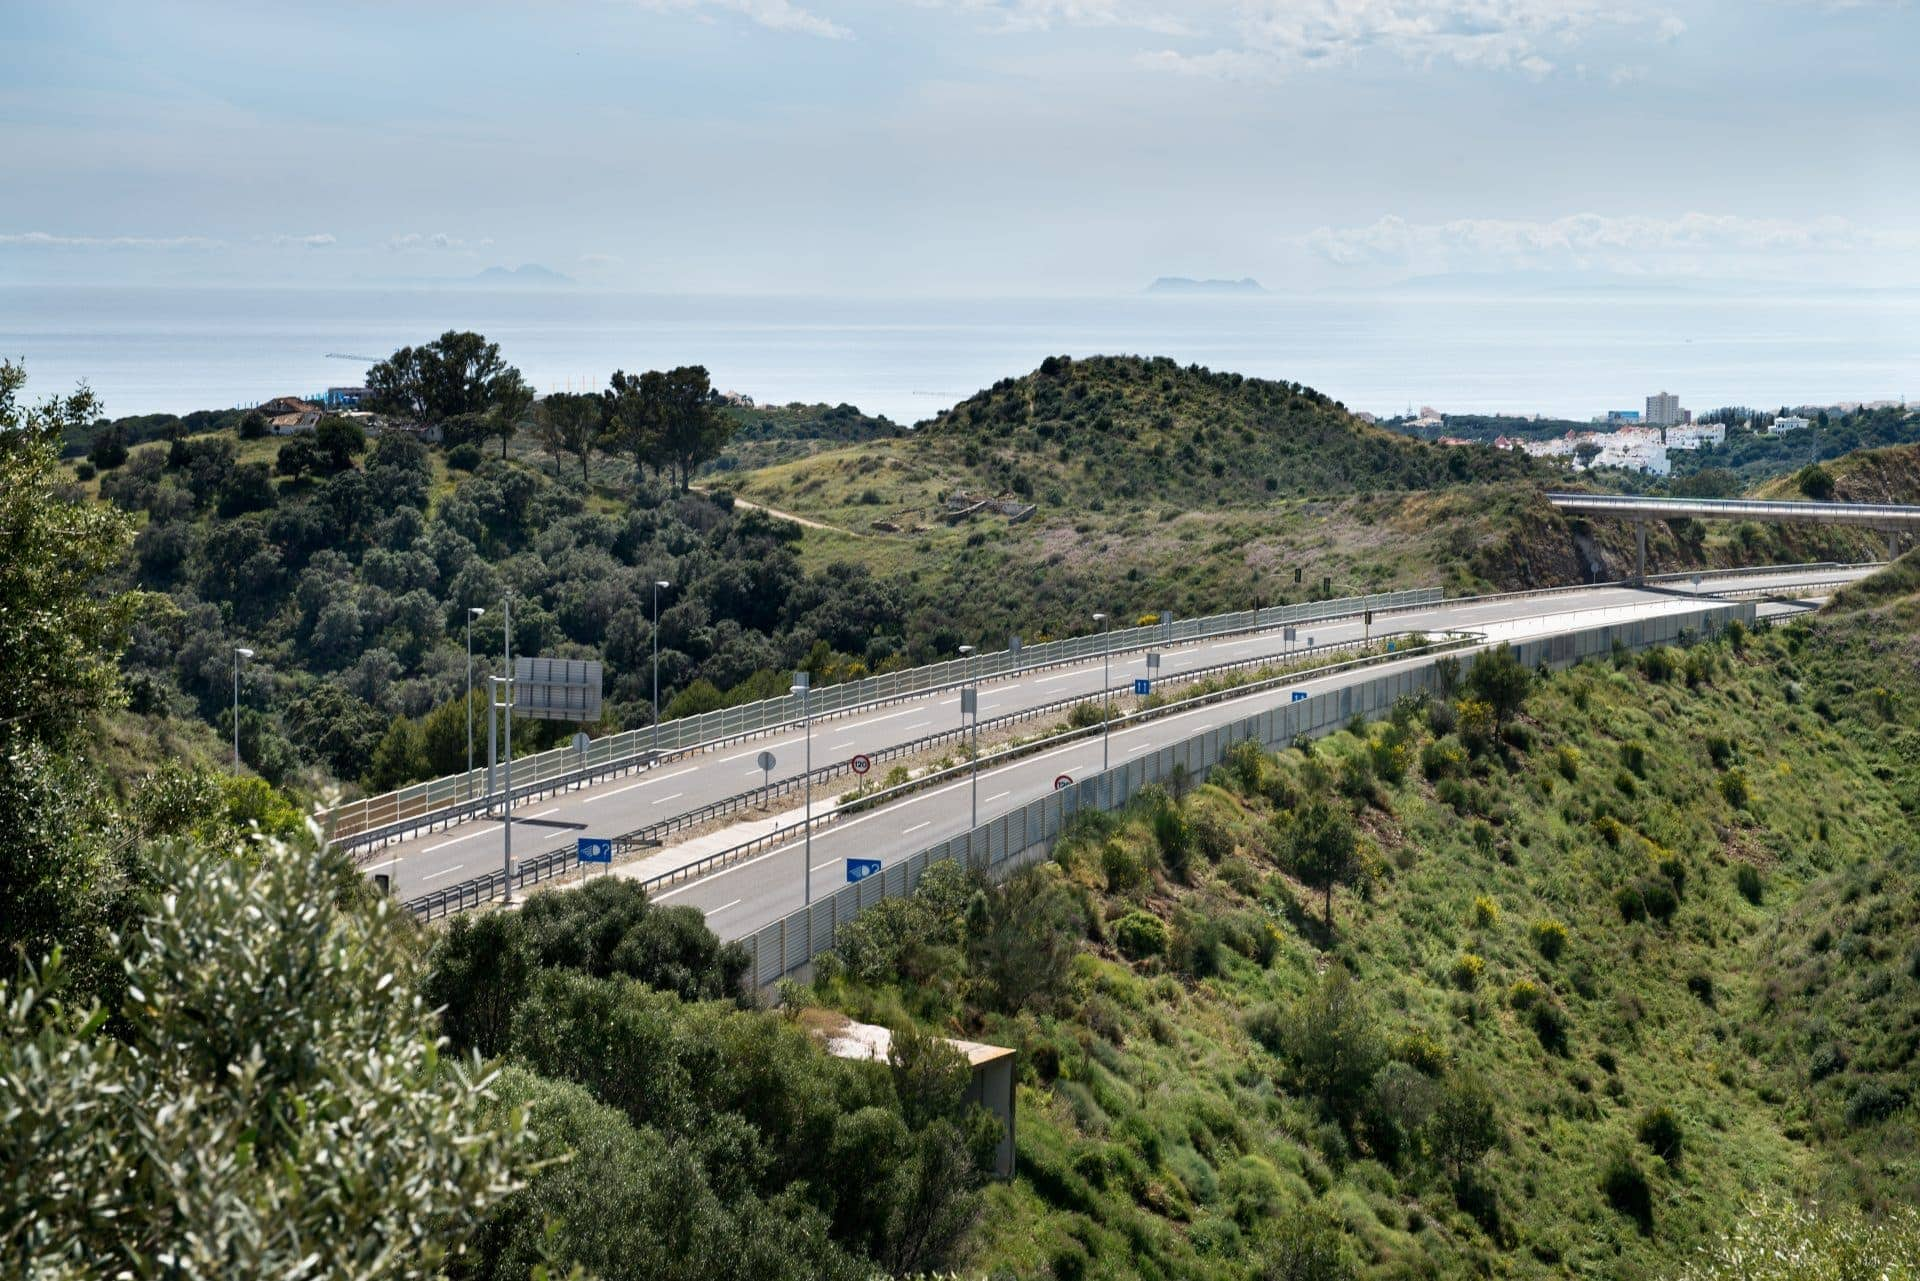 Road built by Ferrovial under the parameters of the fight against climate change